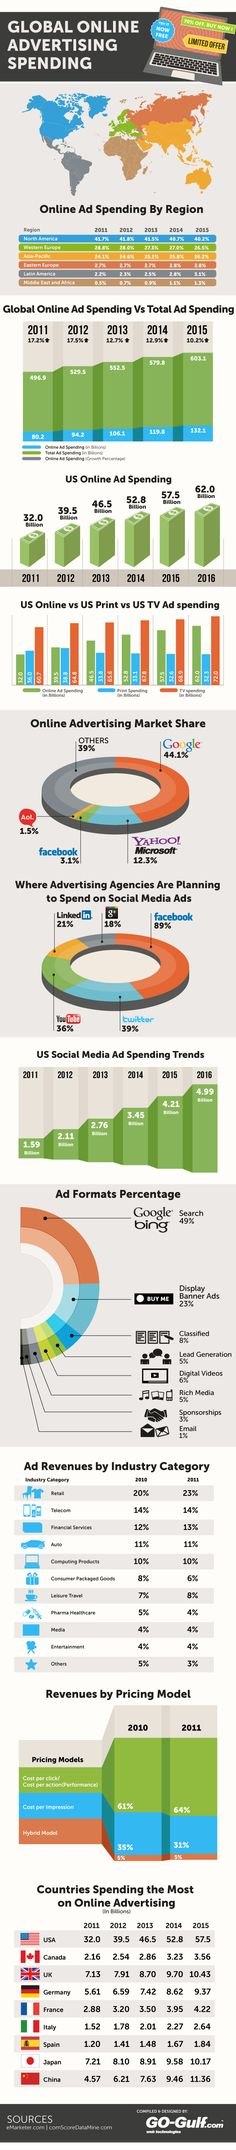 http://www.pamorama.net/2012/05/20/15-informative-2012-marketing-infographics/